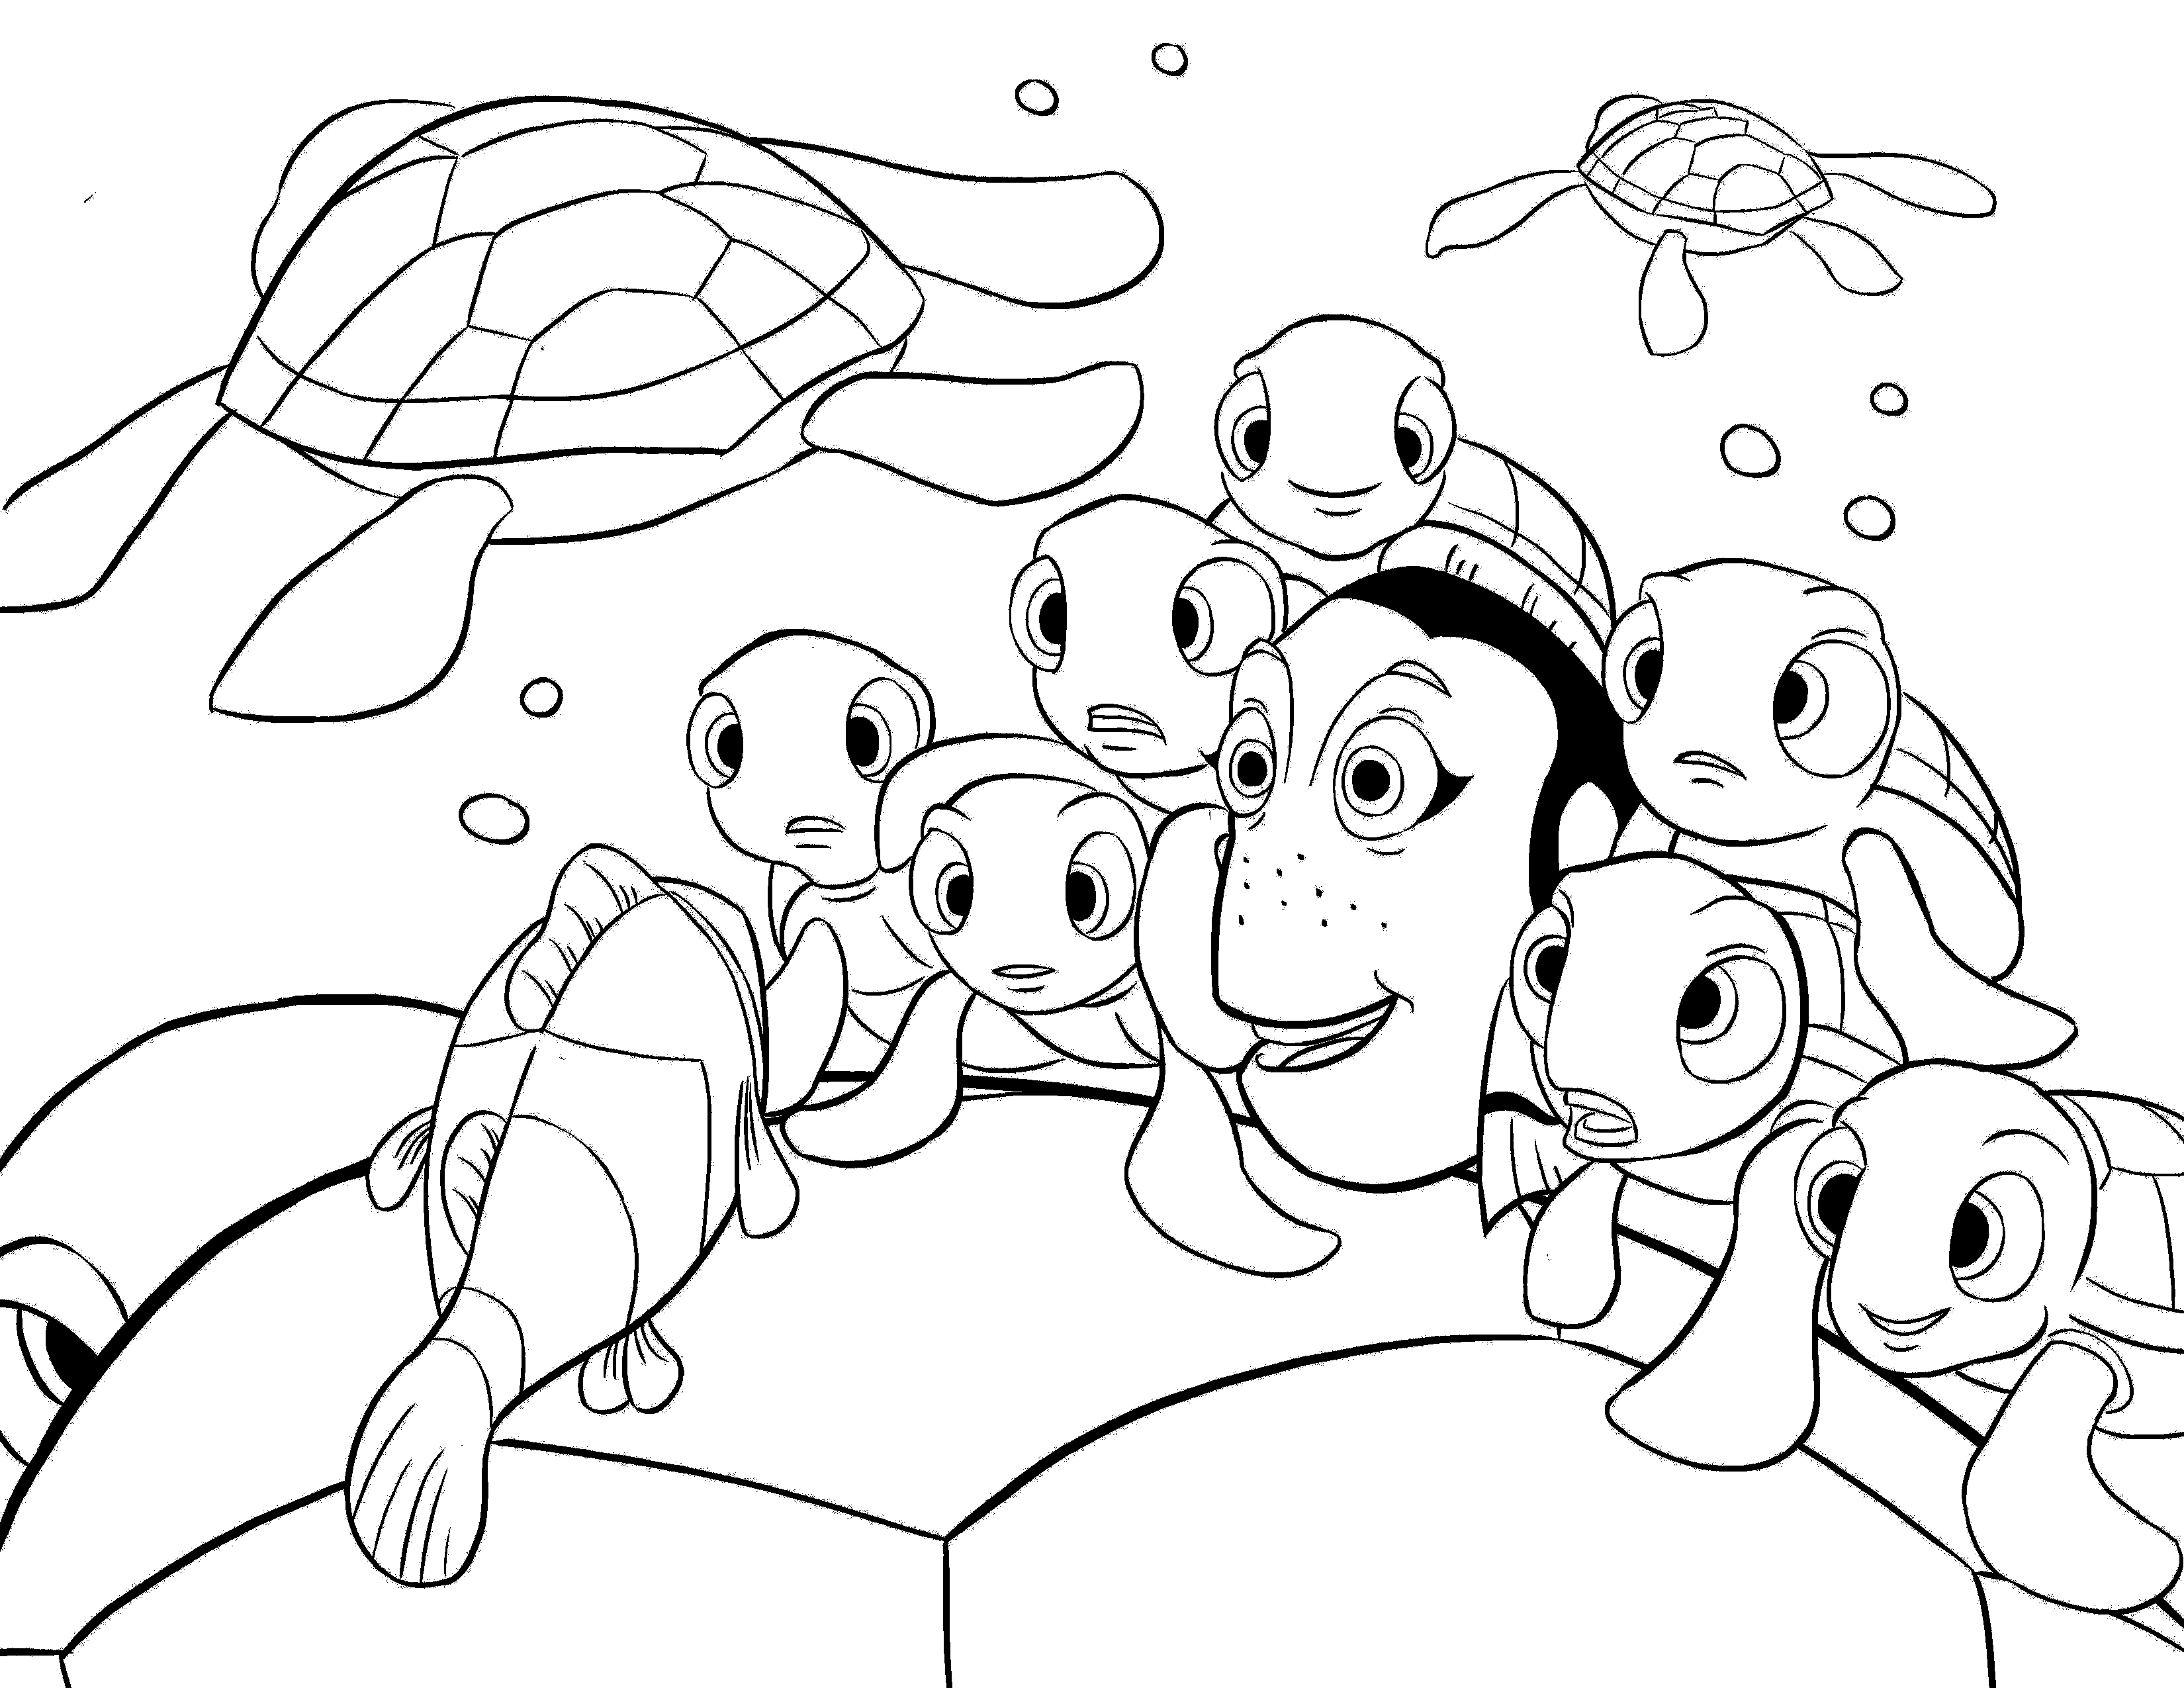 3300x2550 Nemo Coloring Page Printable Of Finding General Sheet For Kids